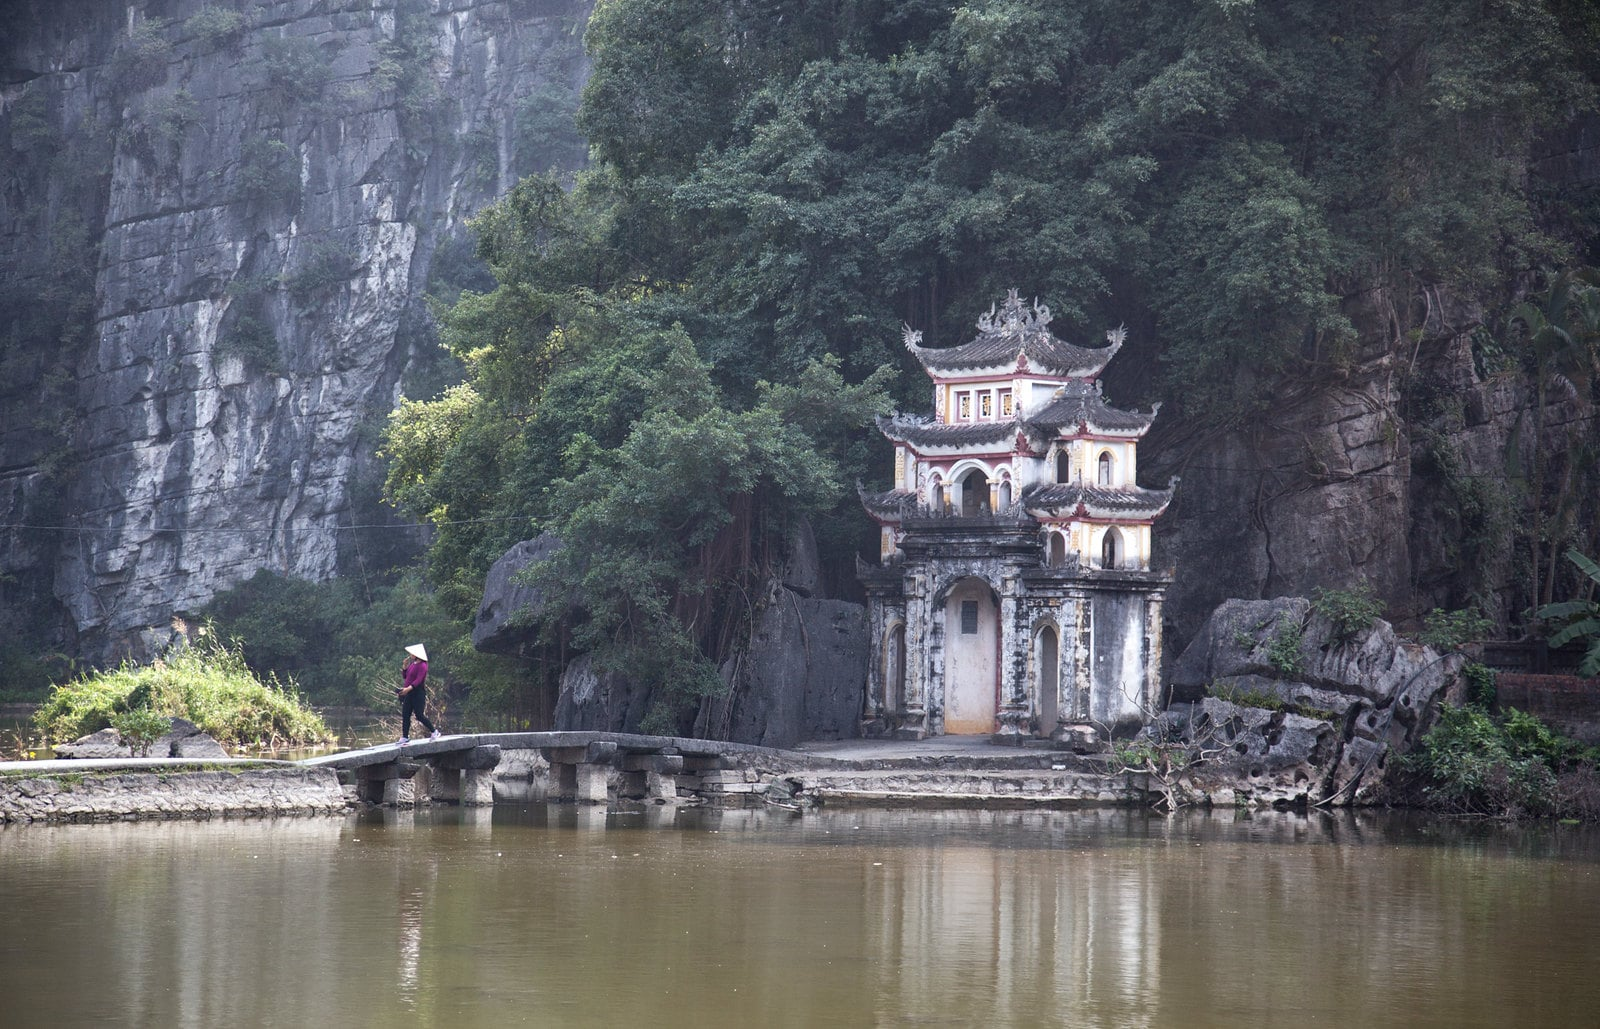 View of the Bich Dong Pagoda in Ninh Bình, Vietnam